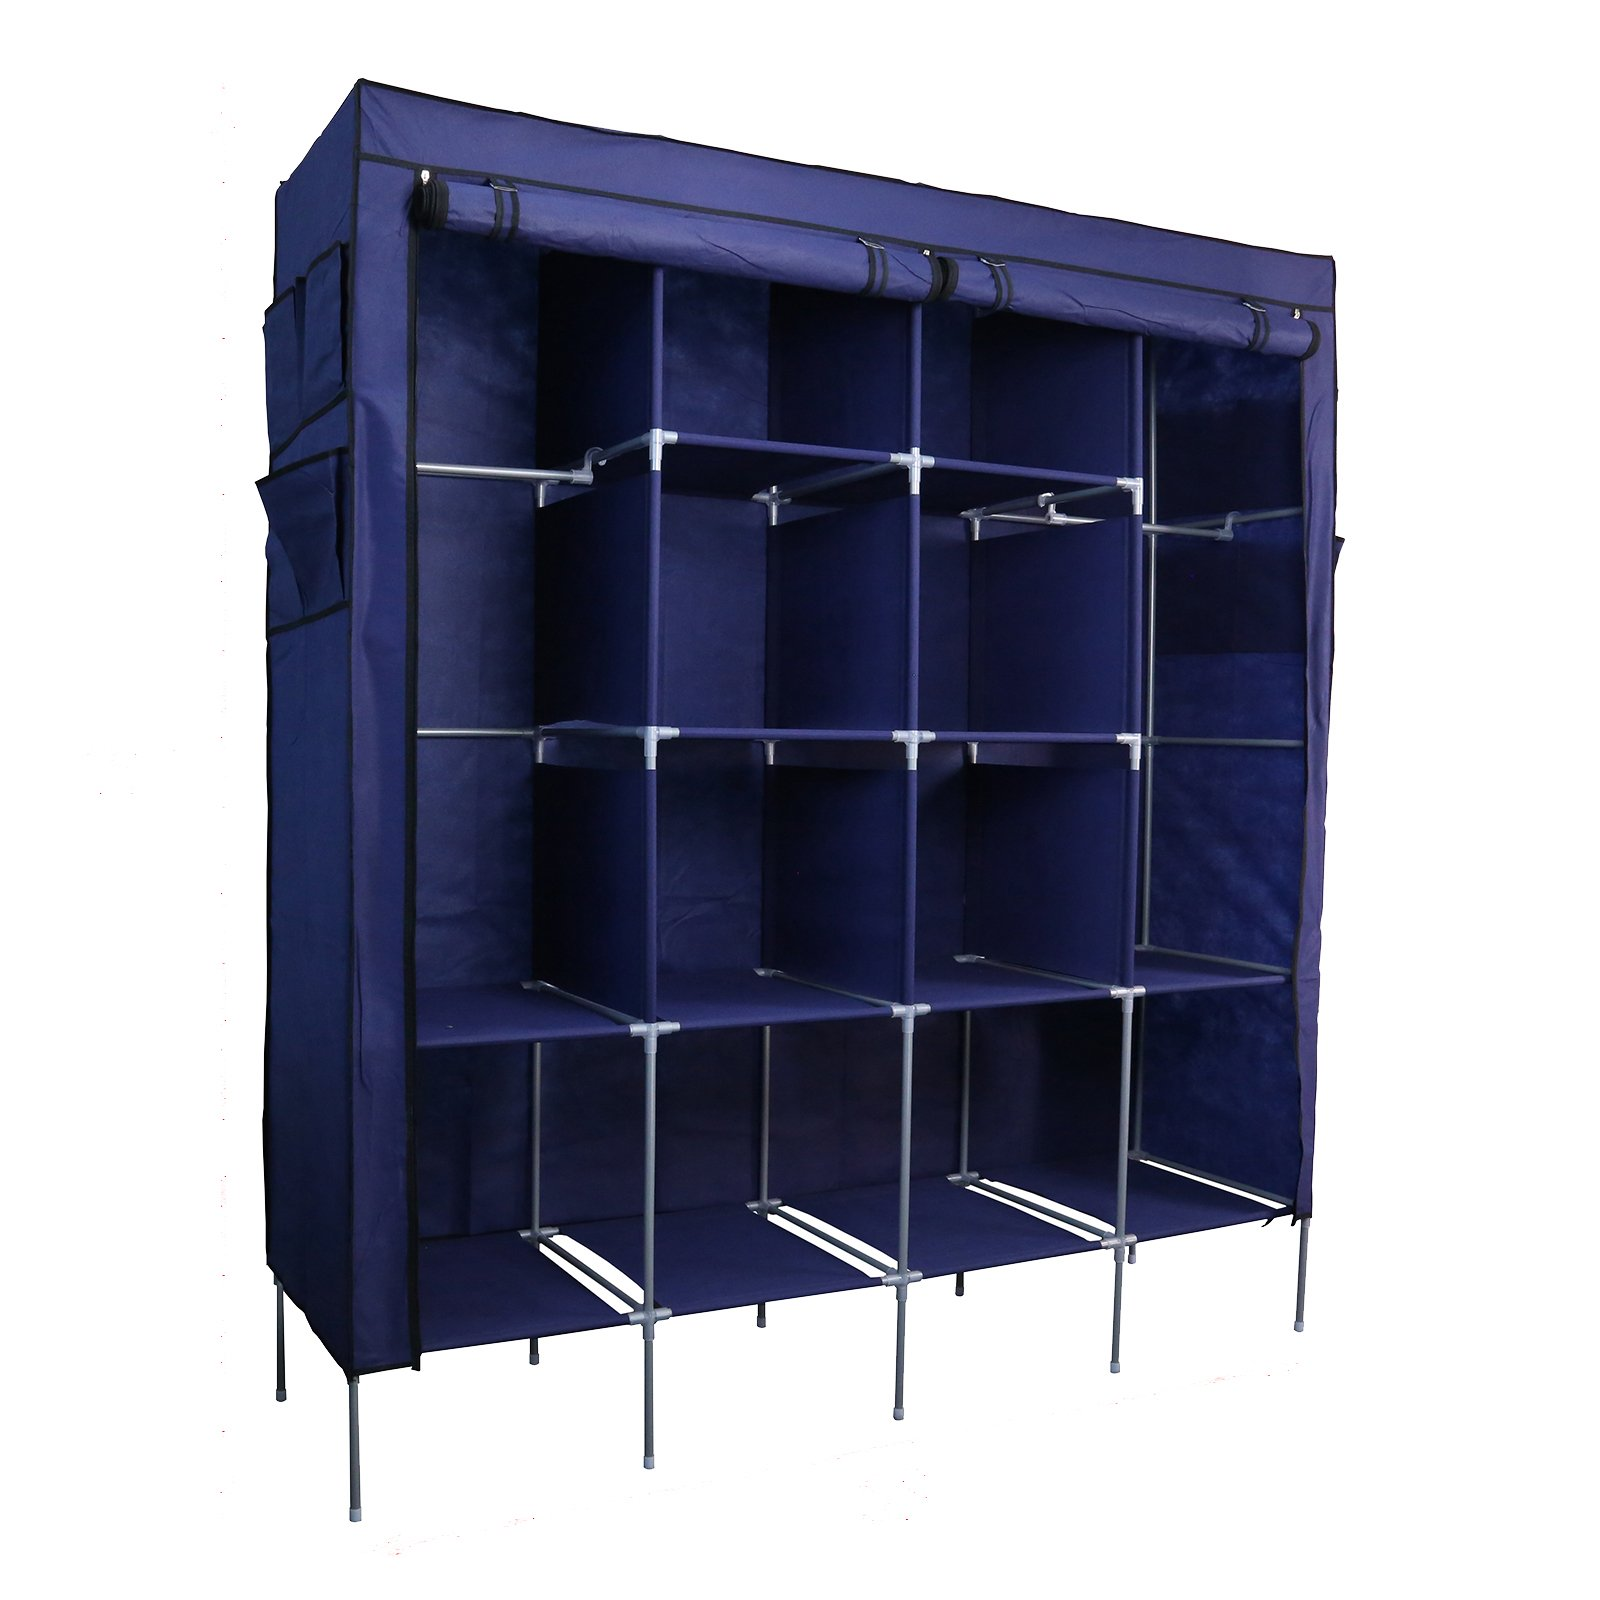 Smart-Home 69'' Clothes Closet Portable Wardrobe Clothes Storage Rack 12 Shelves 4 Side Pockets [Navy, 69 1/4'' x 17'' x 65'' (LxHxD)] by Smart home